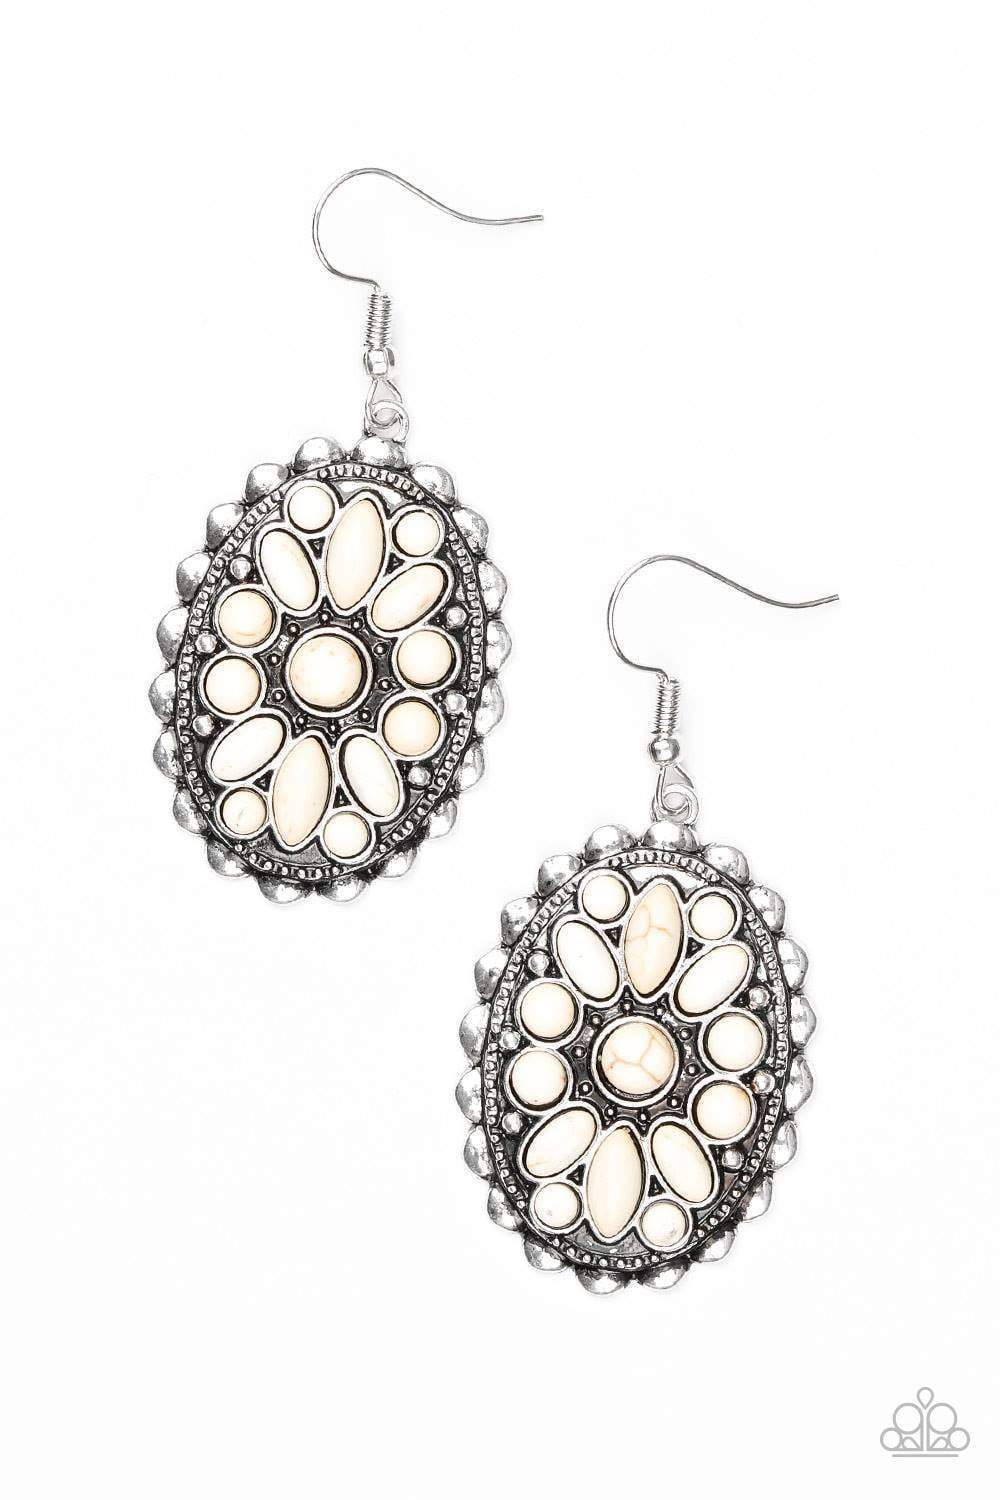 Paparazzi Prairie Poppy - White Stone Floral Pattern Textured Silver Frame Earrings - Bling It On Online